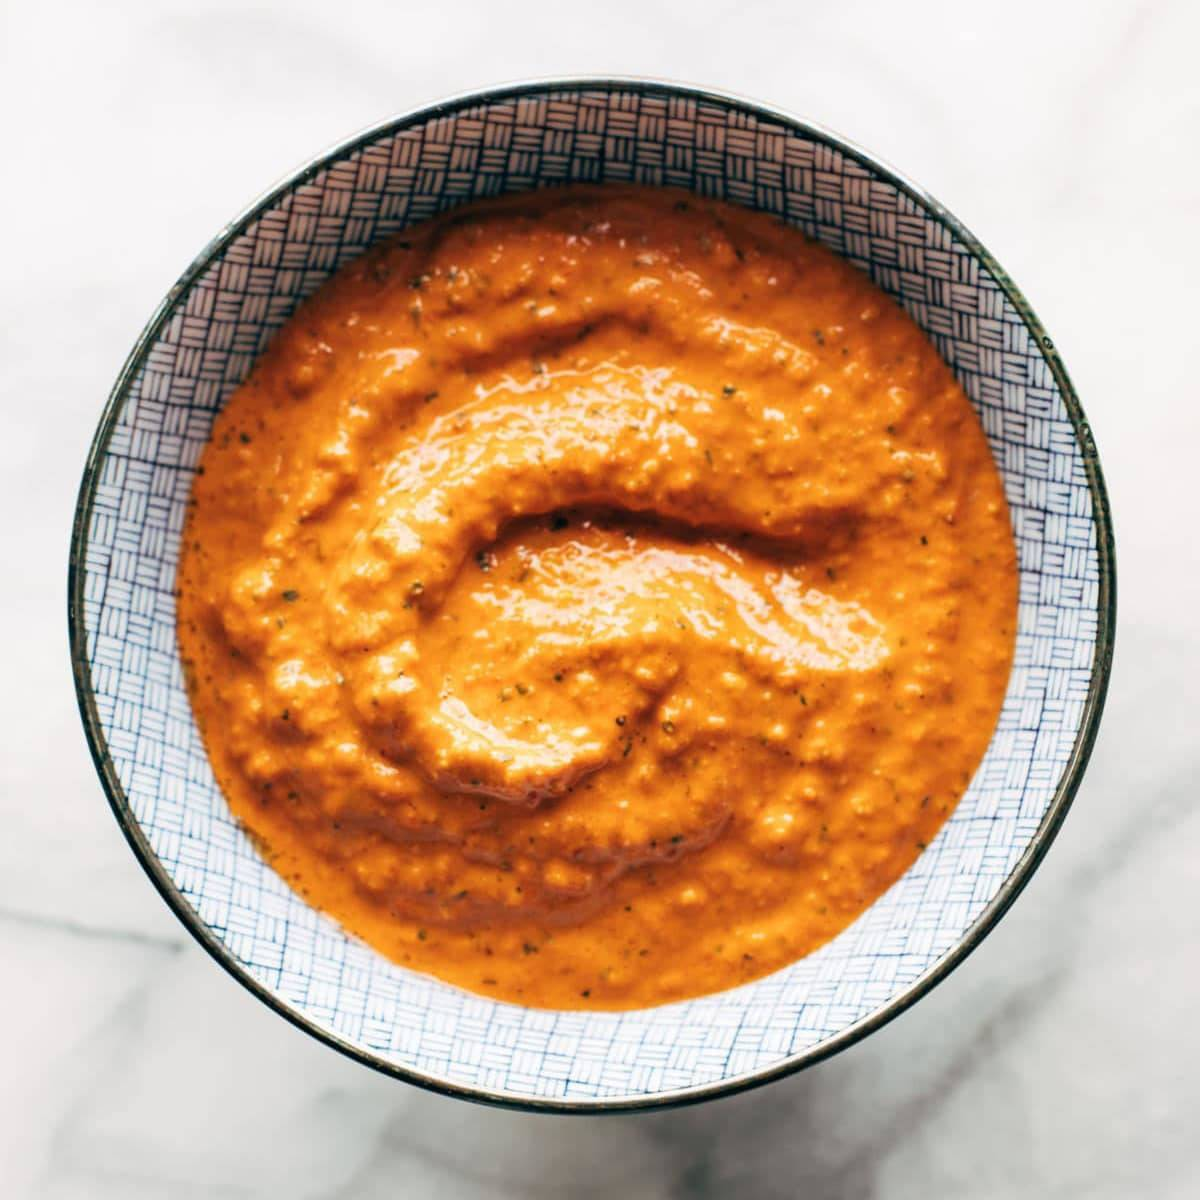 Roasted Red Pepper Sauce Recipe - Pinch of Yum